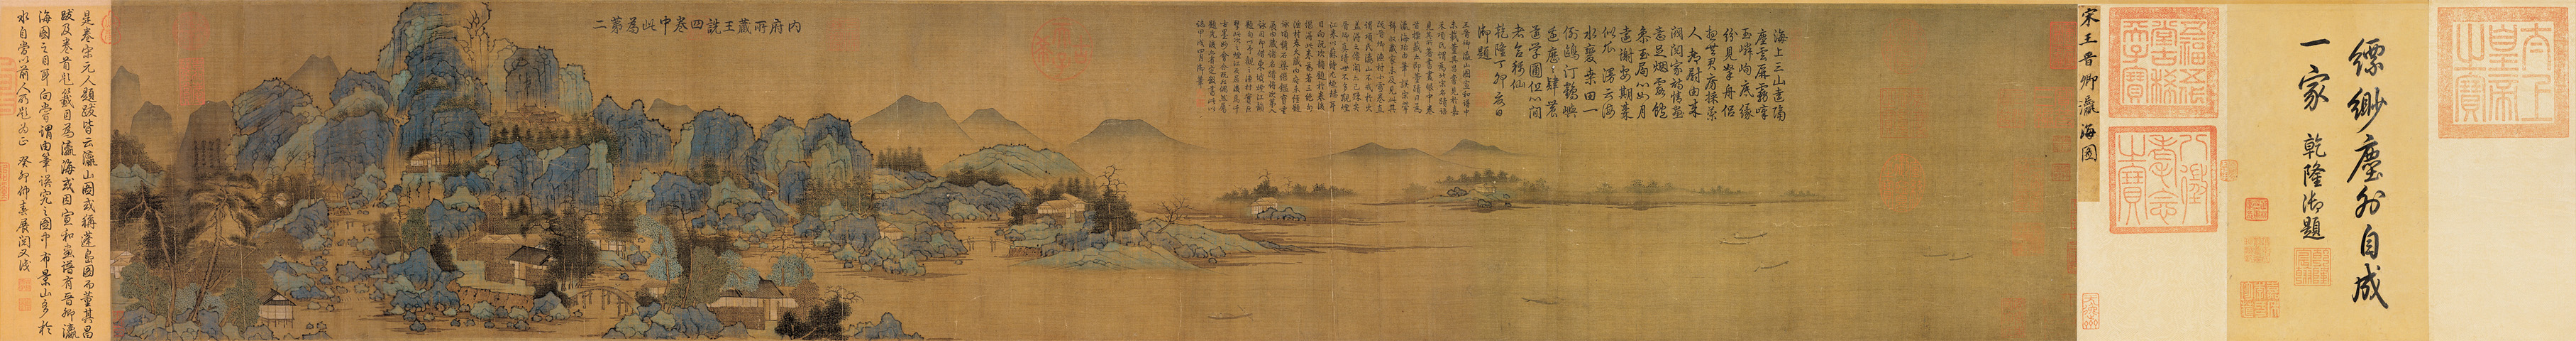 Wang Shen: Mountains of the Immortals